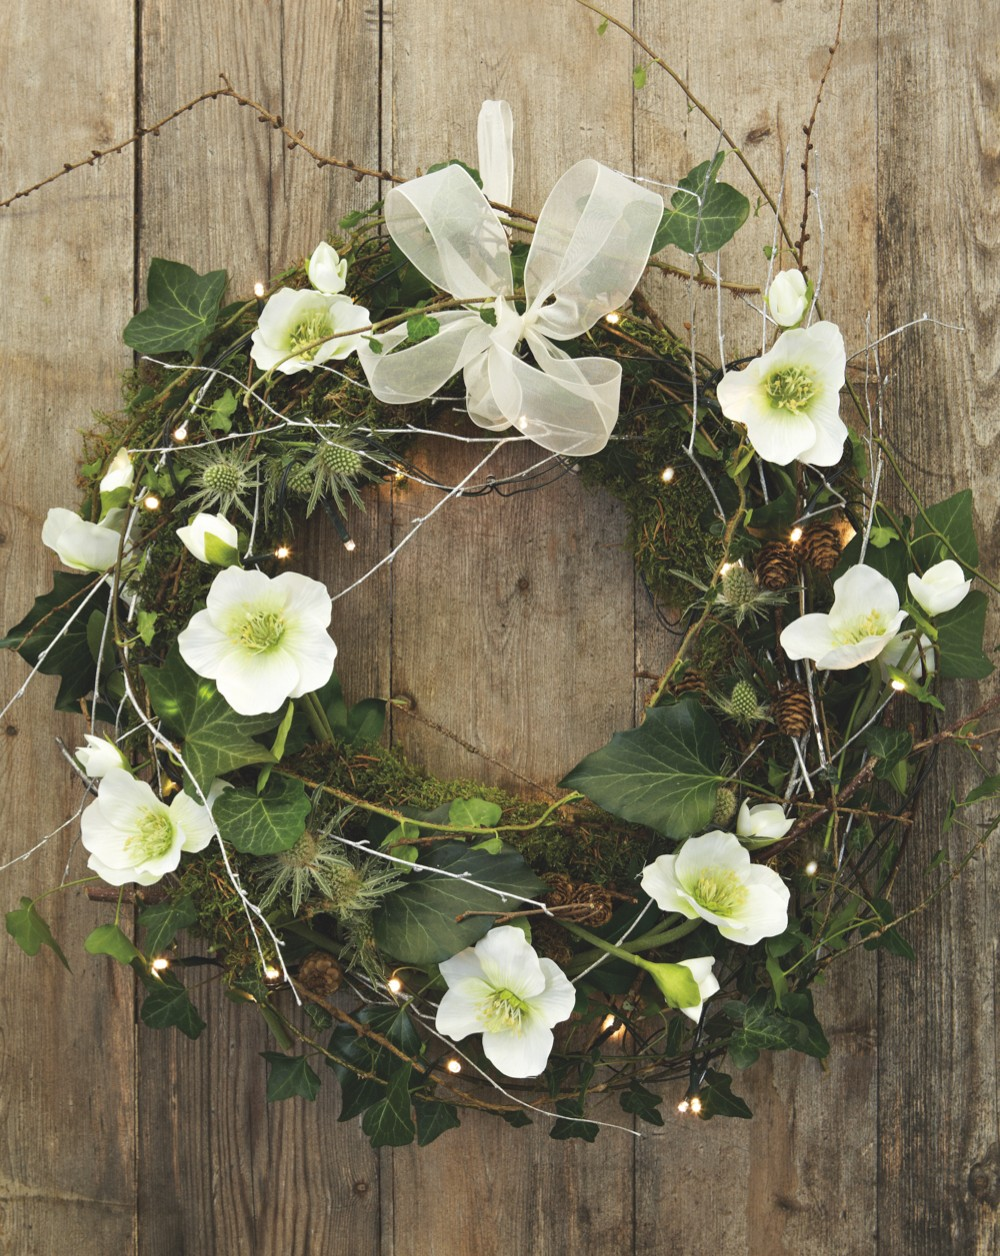 Homemade Christmas wreath with fresh flowers and foraged greenery